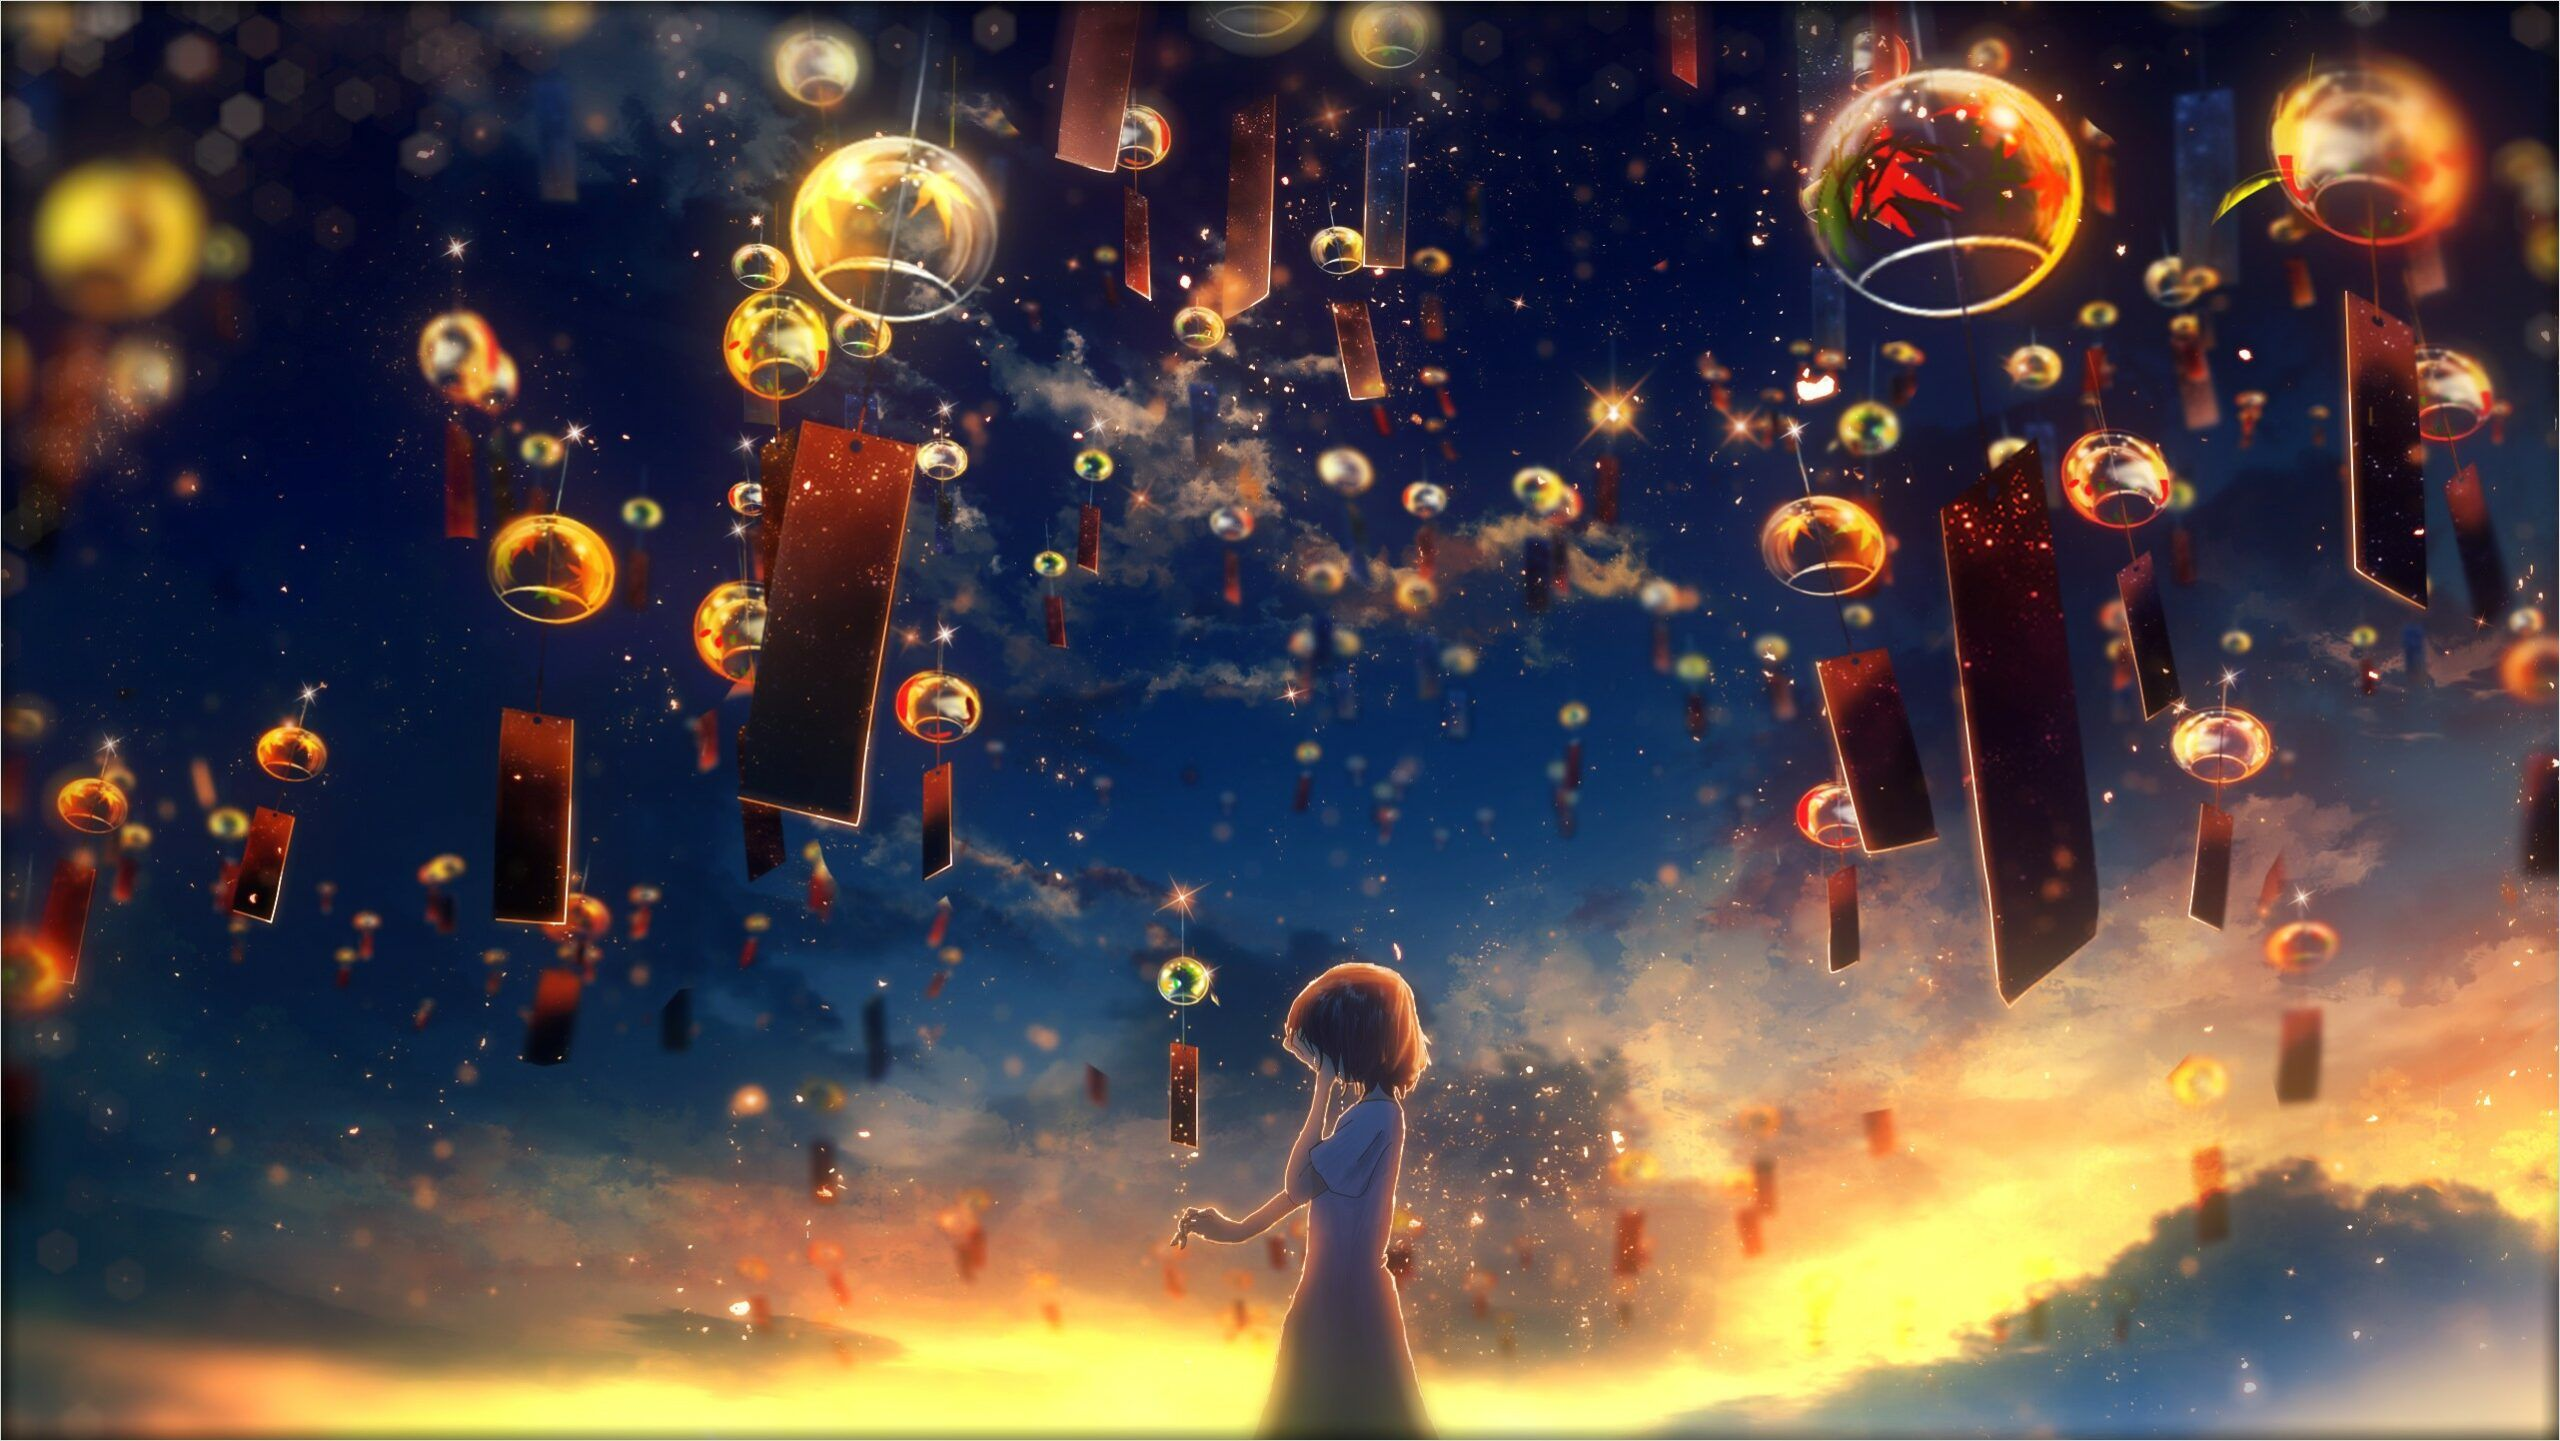 4k Animated Wallpaper Dream in 2020 Sky anime, Anime artwork